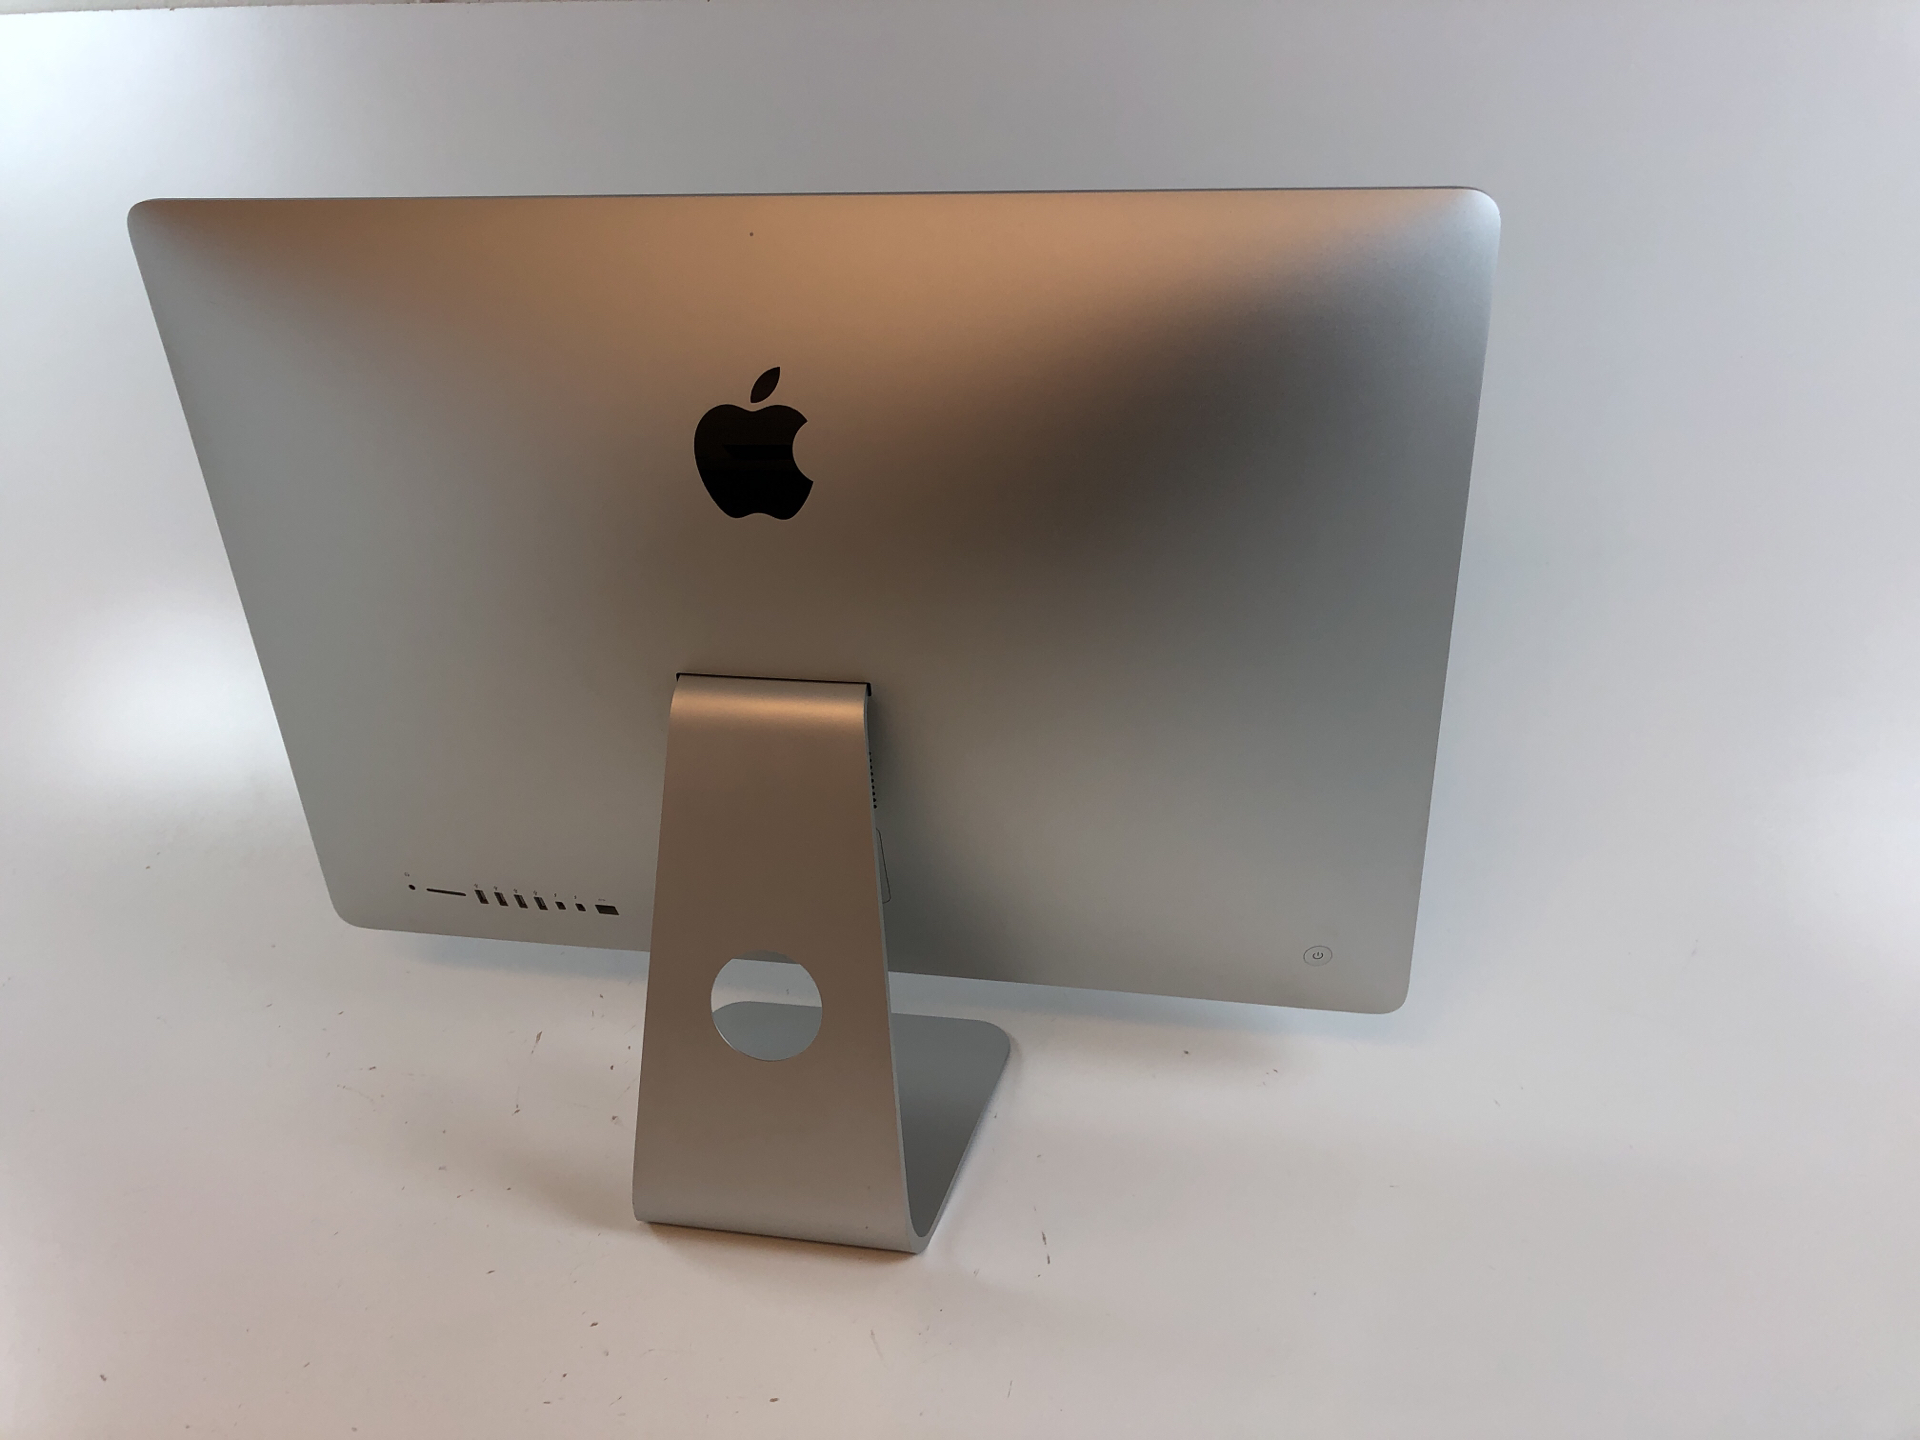 "iMac 27"" Late 2013 (Intel Quad-Core i5 3.4 GHz 8 GB RAM 1 TB HDD), Intel Quad-Core i5 3.4 GHz, 8 GB RAM, 1 TB HDD, Bild 4"